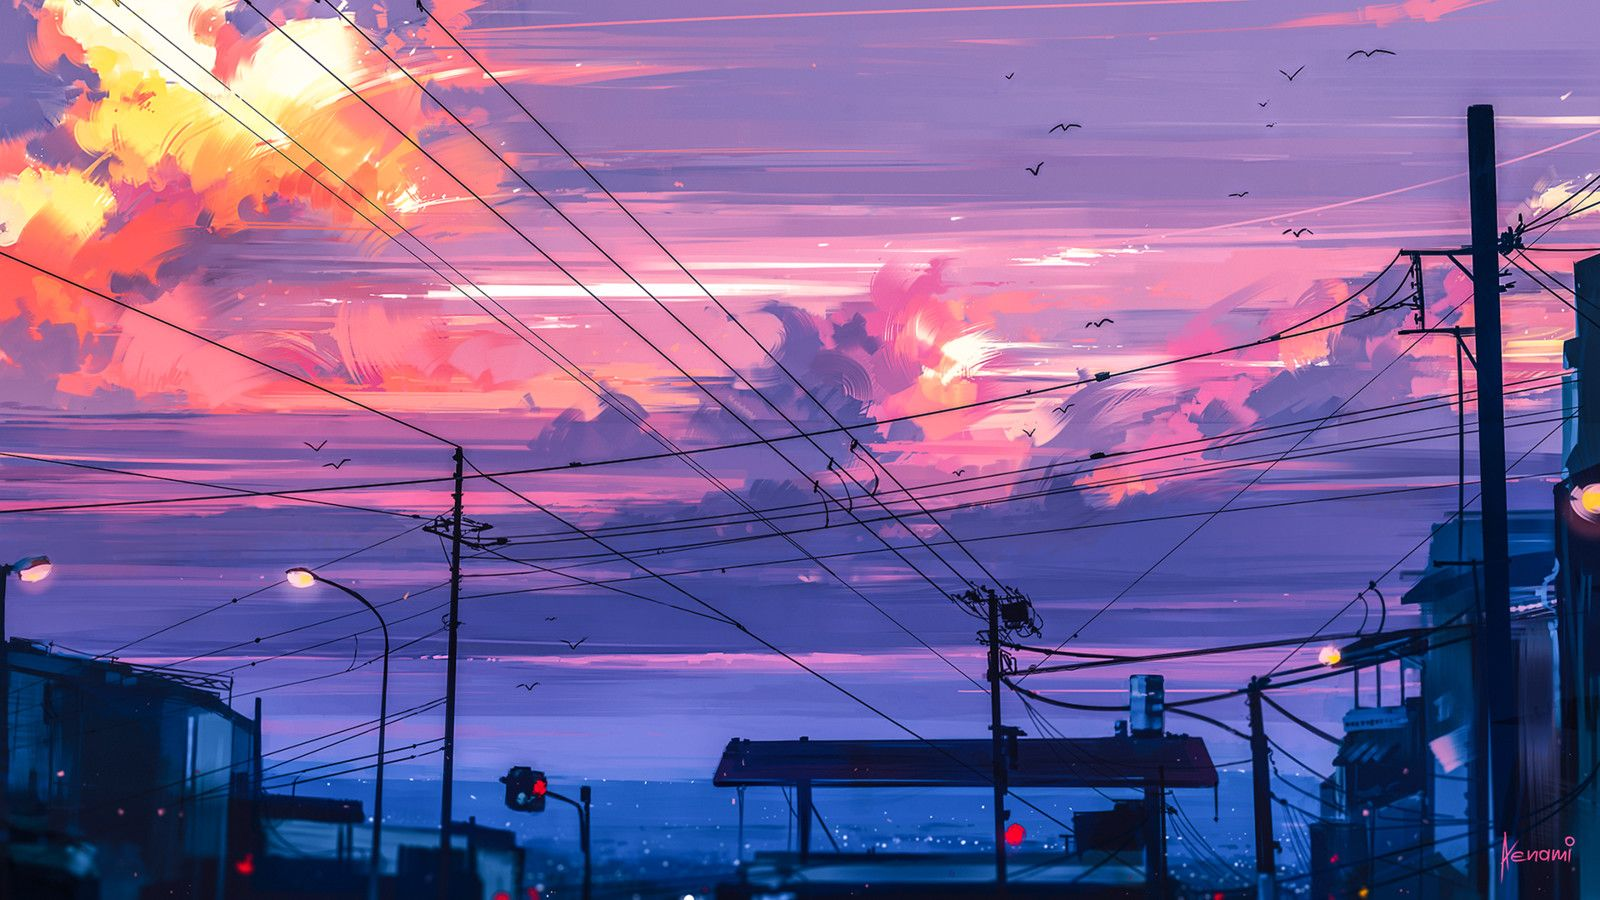 28 Aesthetic Anime Wallpaper Desktop Milkyycloud Pixel Art Landscape Desktop Wallpaper In 2020 Desktop Wallpaper Art Pixel Art Landscape Anime Backgrounds Wallpapers